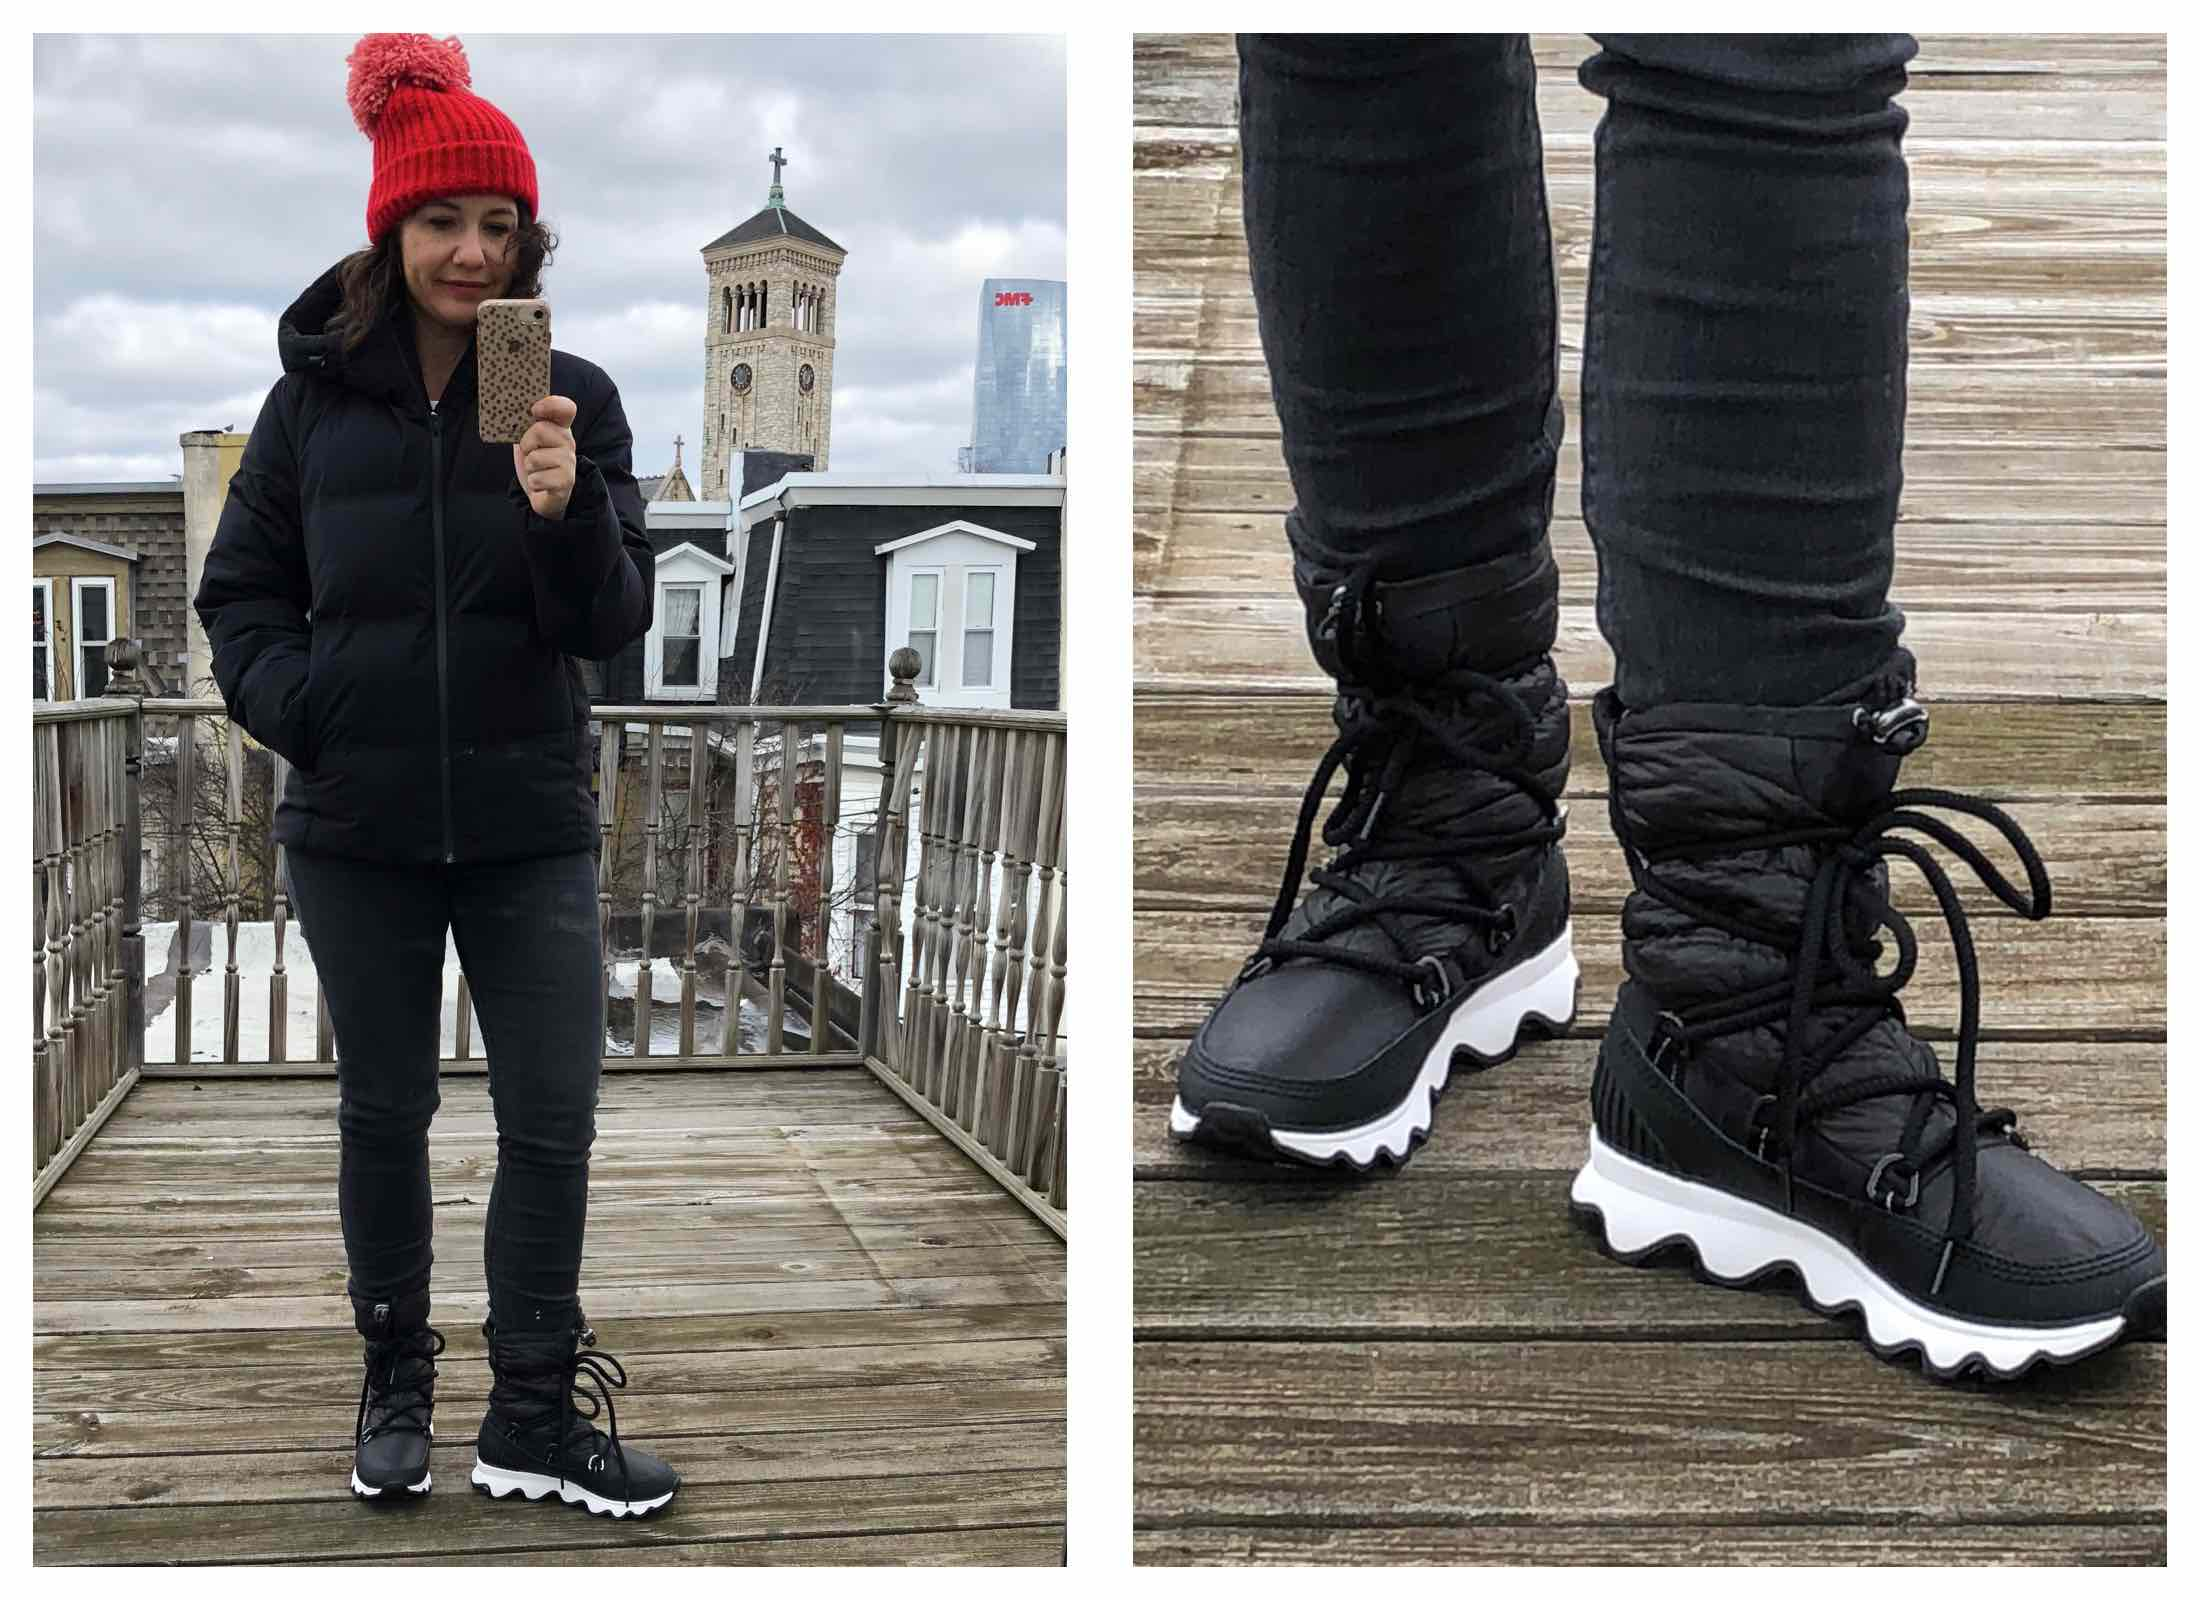 Sorel. Kamik. Bogs. Technica. We're seriously crushing on snow boots this season & trying tall winter boots, mid-calf boots & shorties. Find your favs!